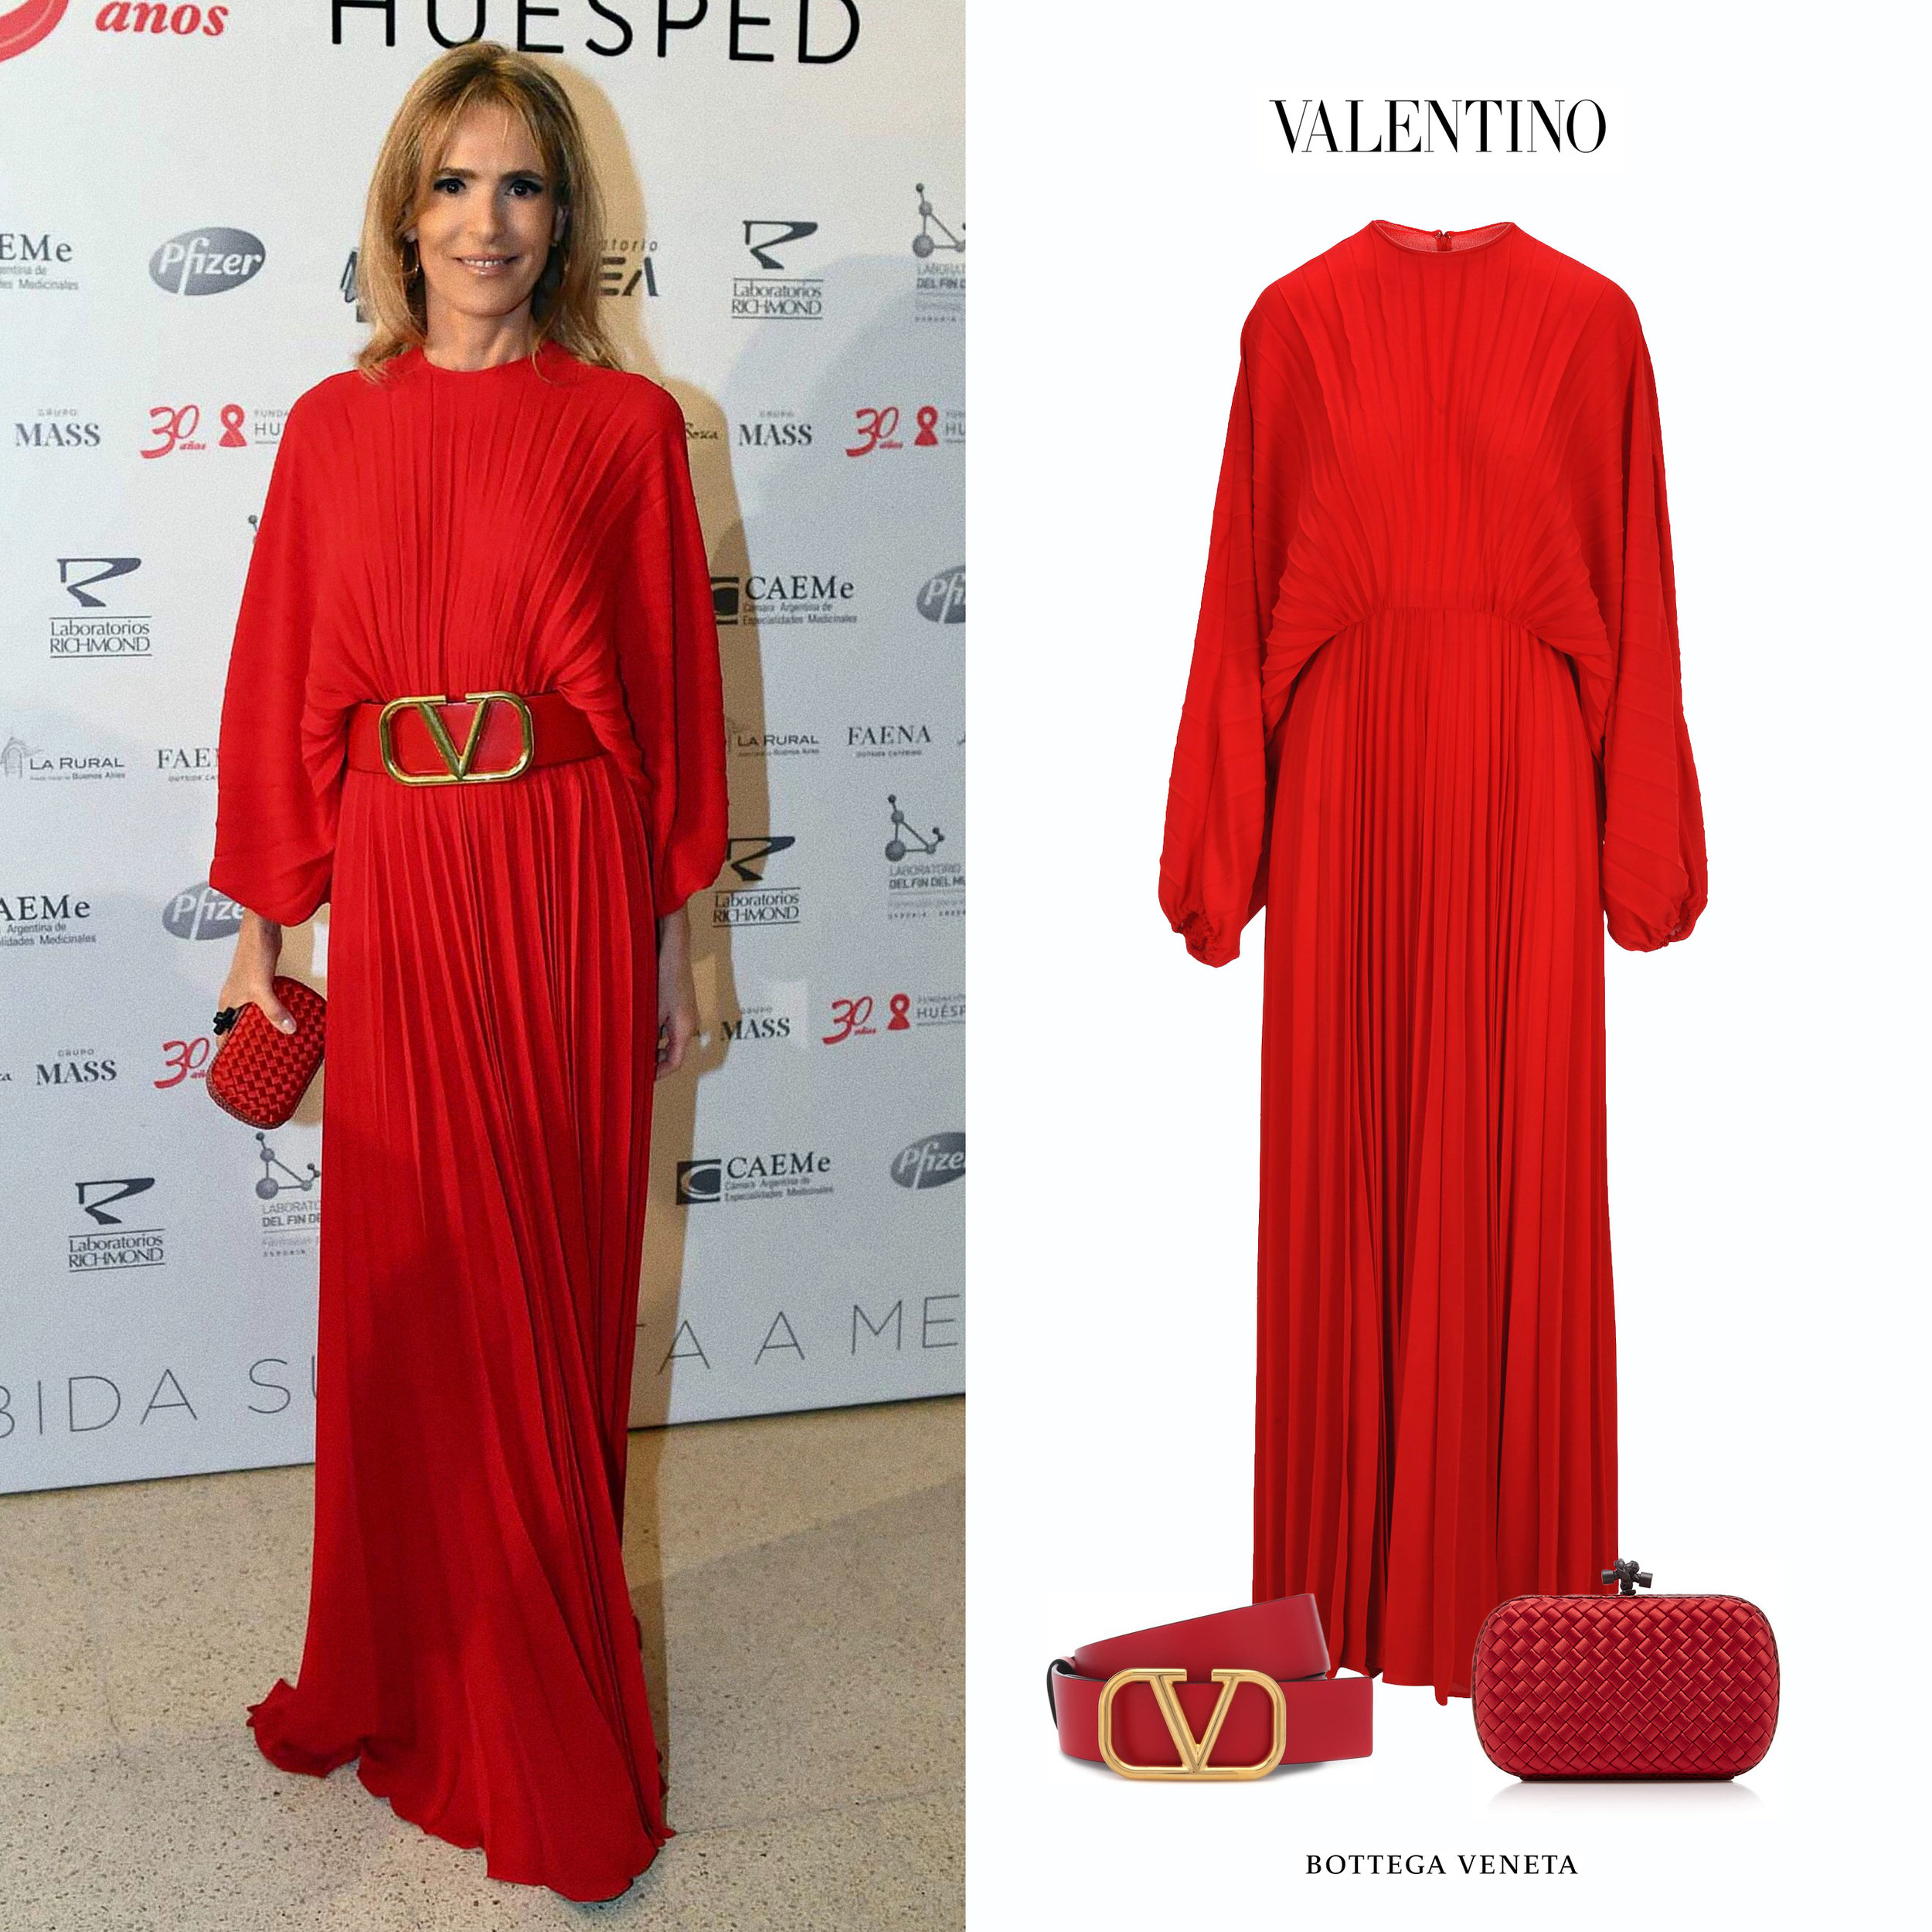 Rossella_Della_Giovampaola_Fundacion_Huesped_Vestido_Plisado_Long_Sleeve_Red_Plisse_Valentino_Dress_Logo_Belt_Cinturon_Clutch_Intrecciato_Knot_Red_Rojo.jpg